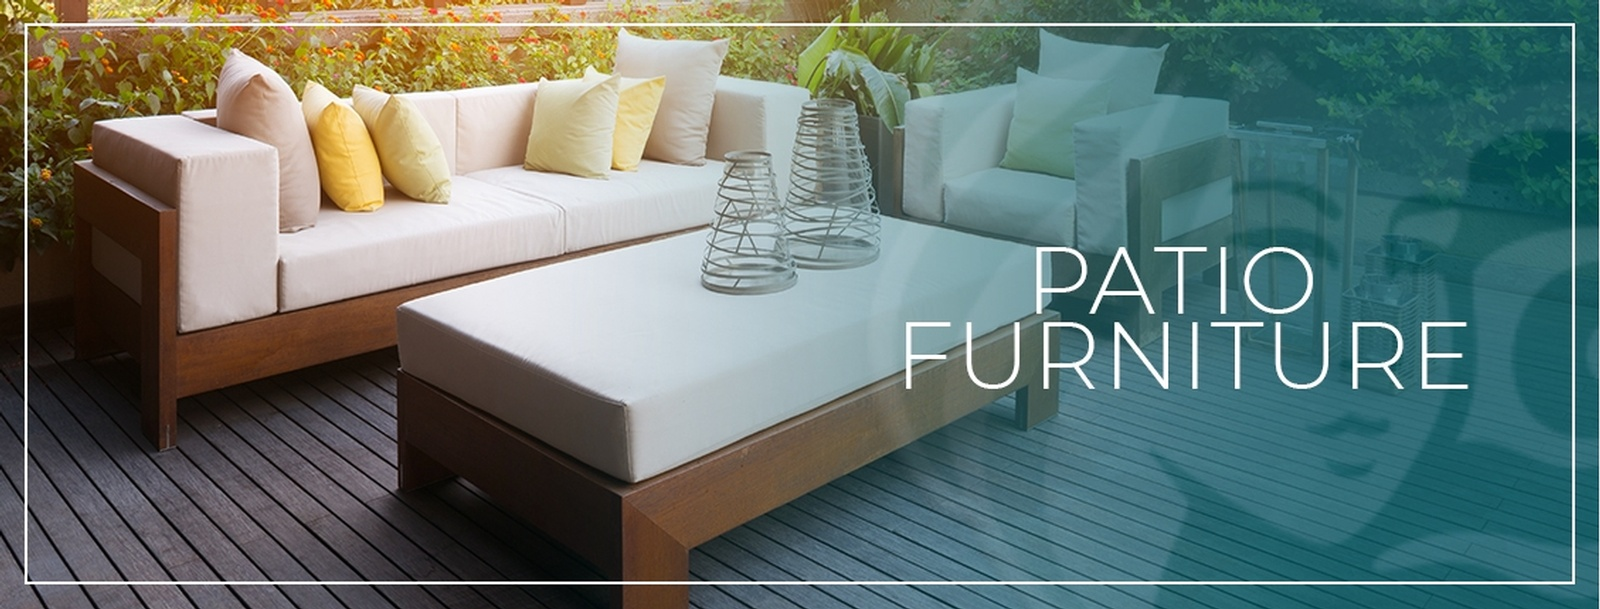 Buy Patio Furniture Online at Beachcomber Lloydminster